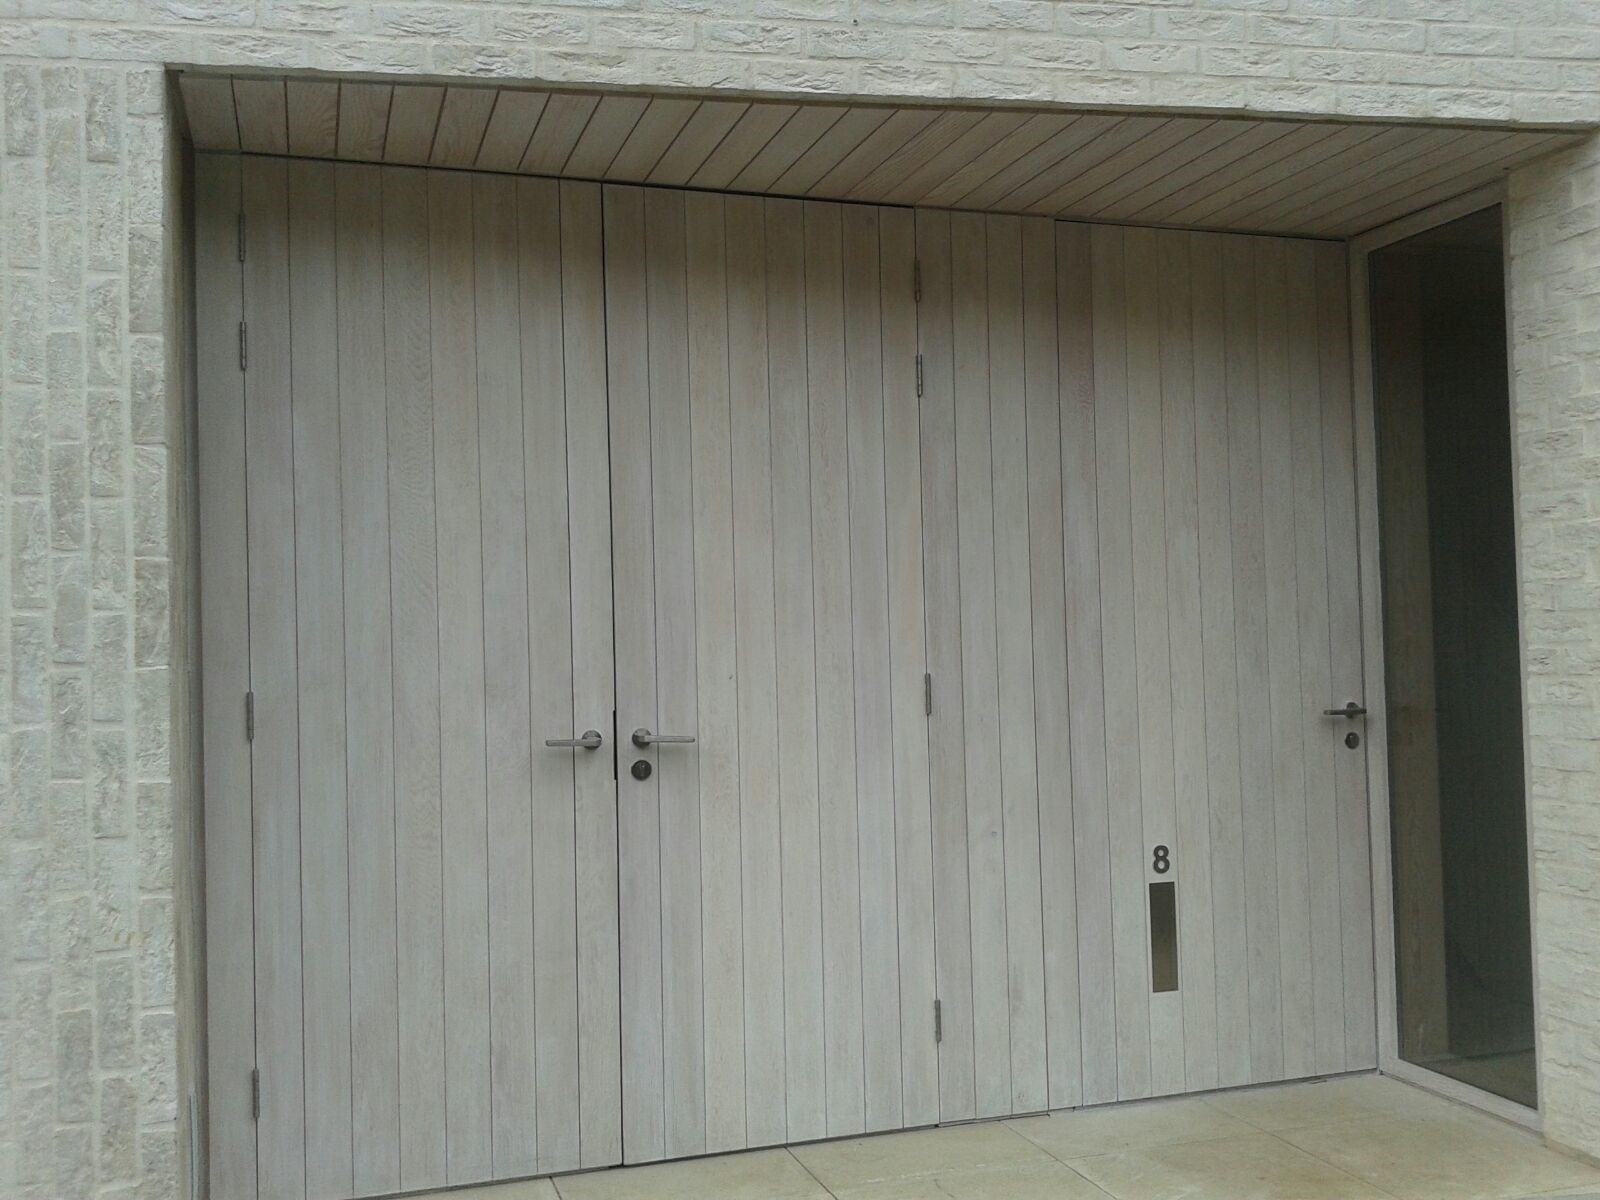 Kandd double door design